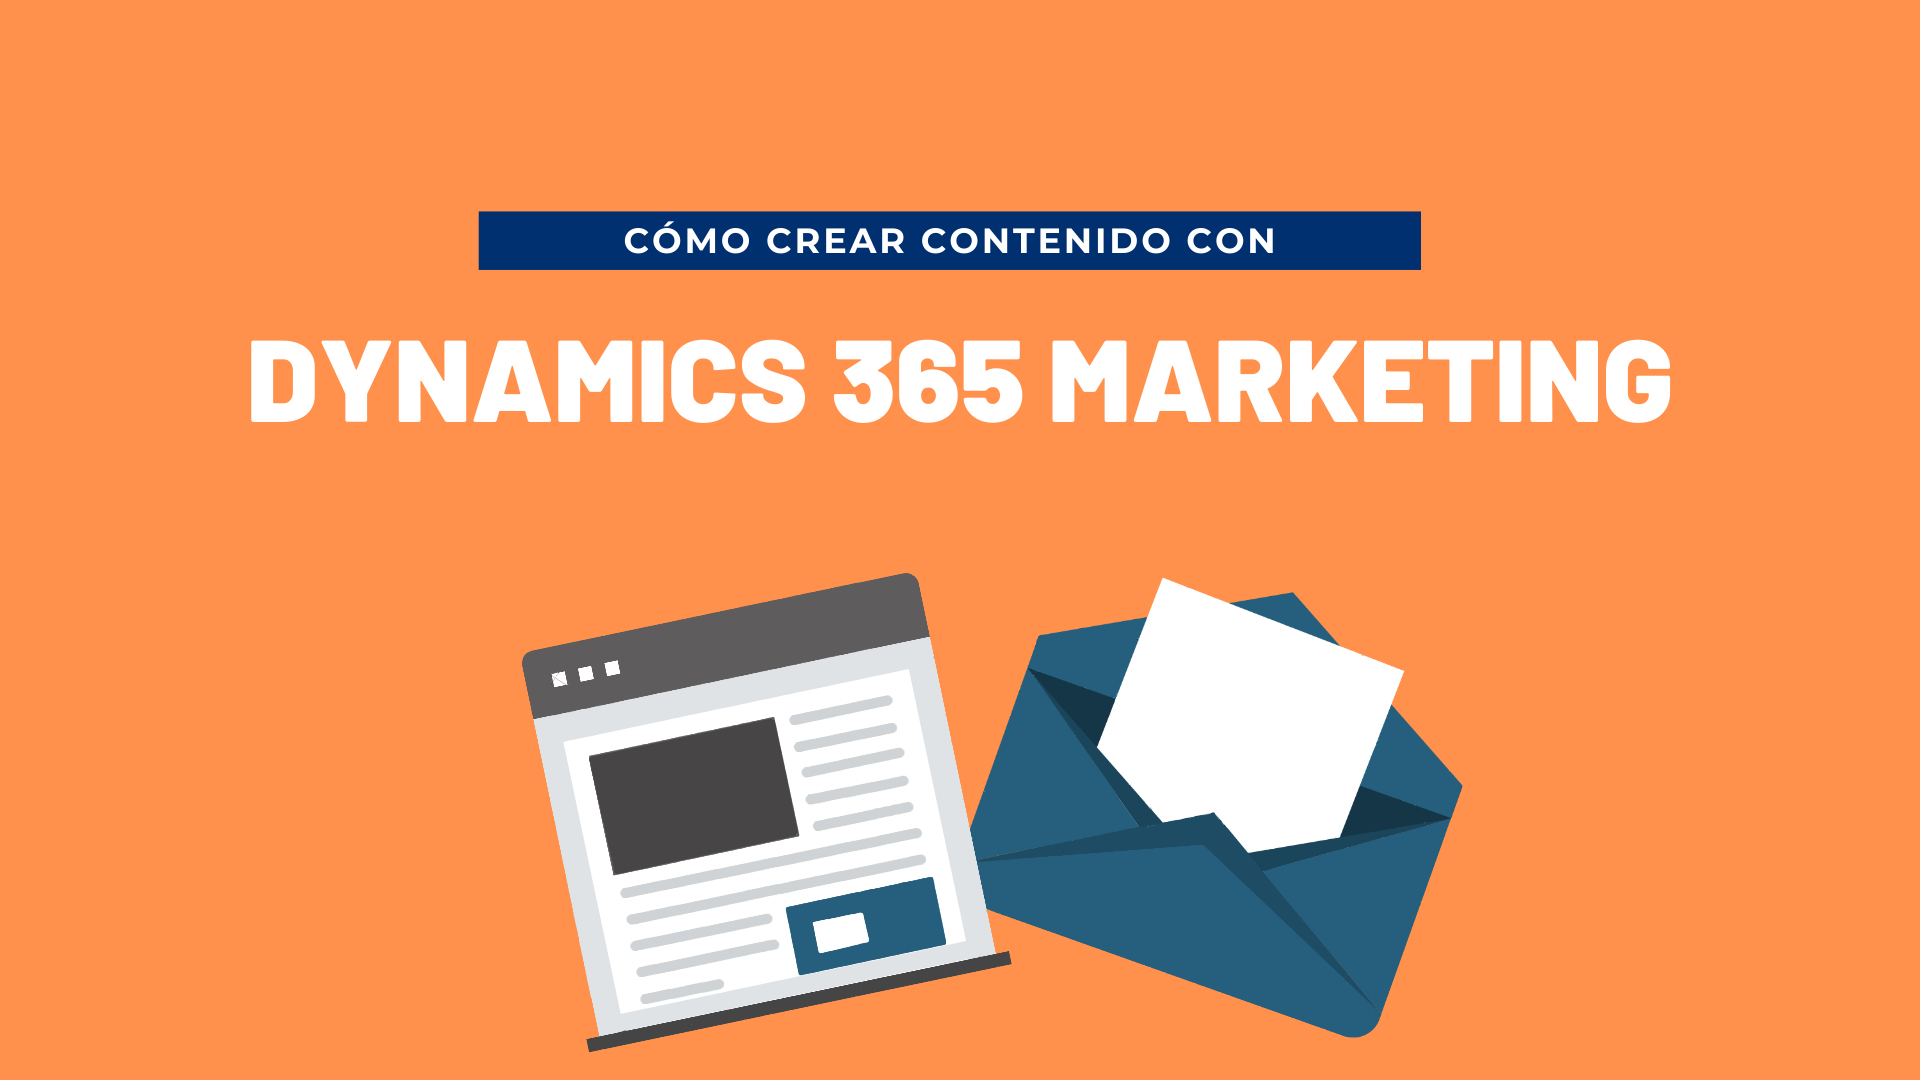 contenido-dynamics365-marketing